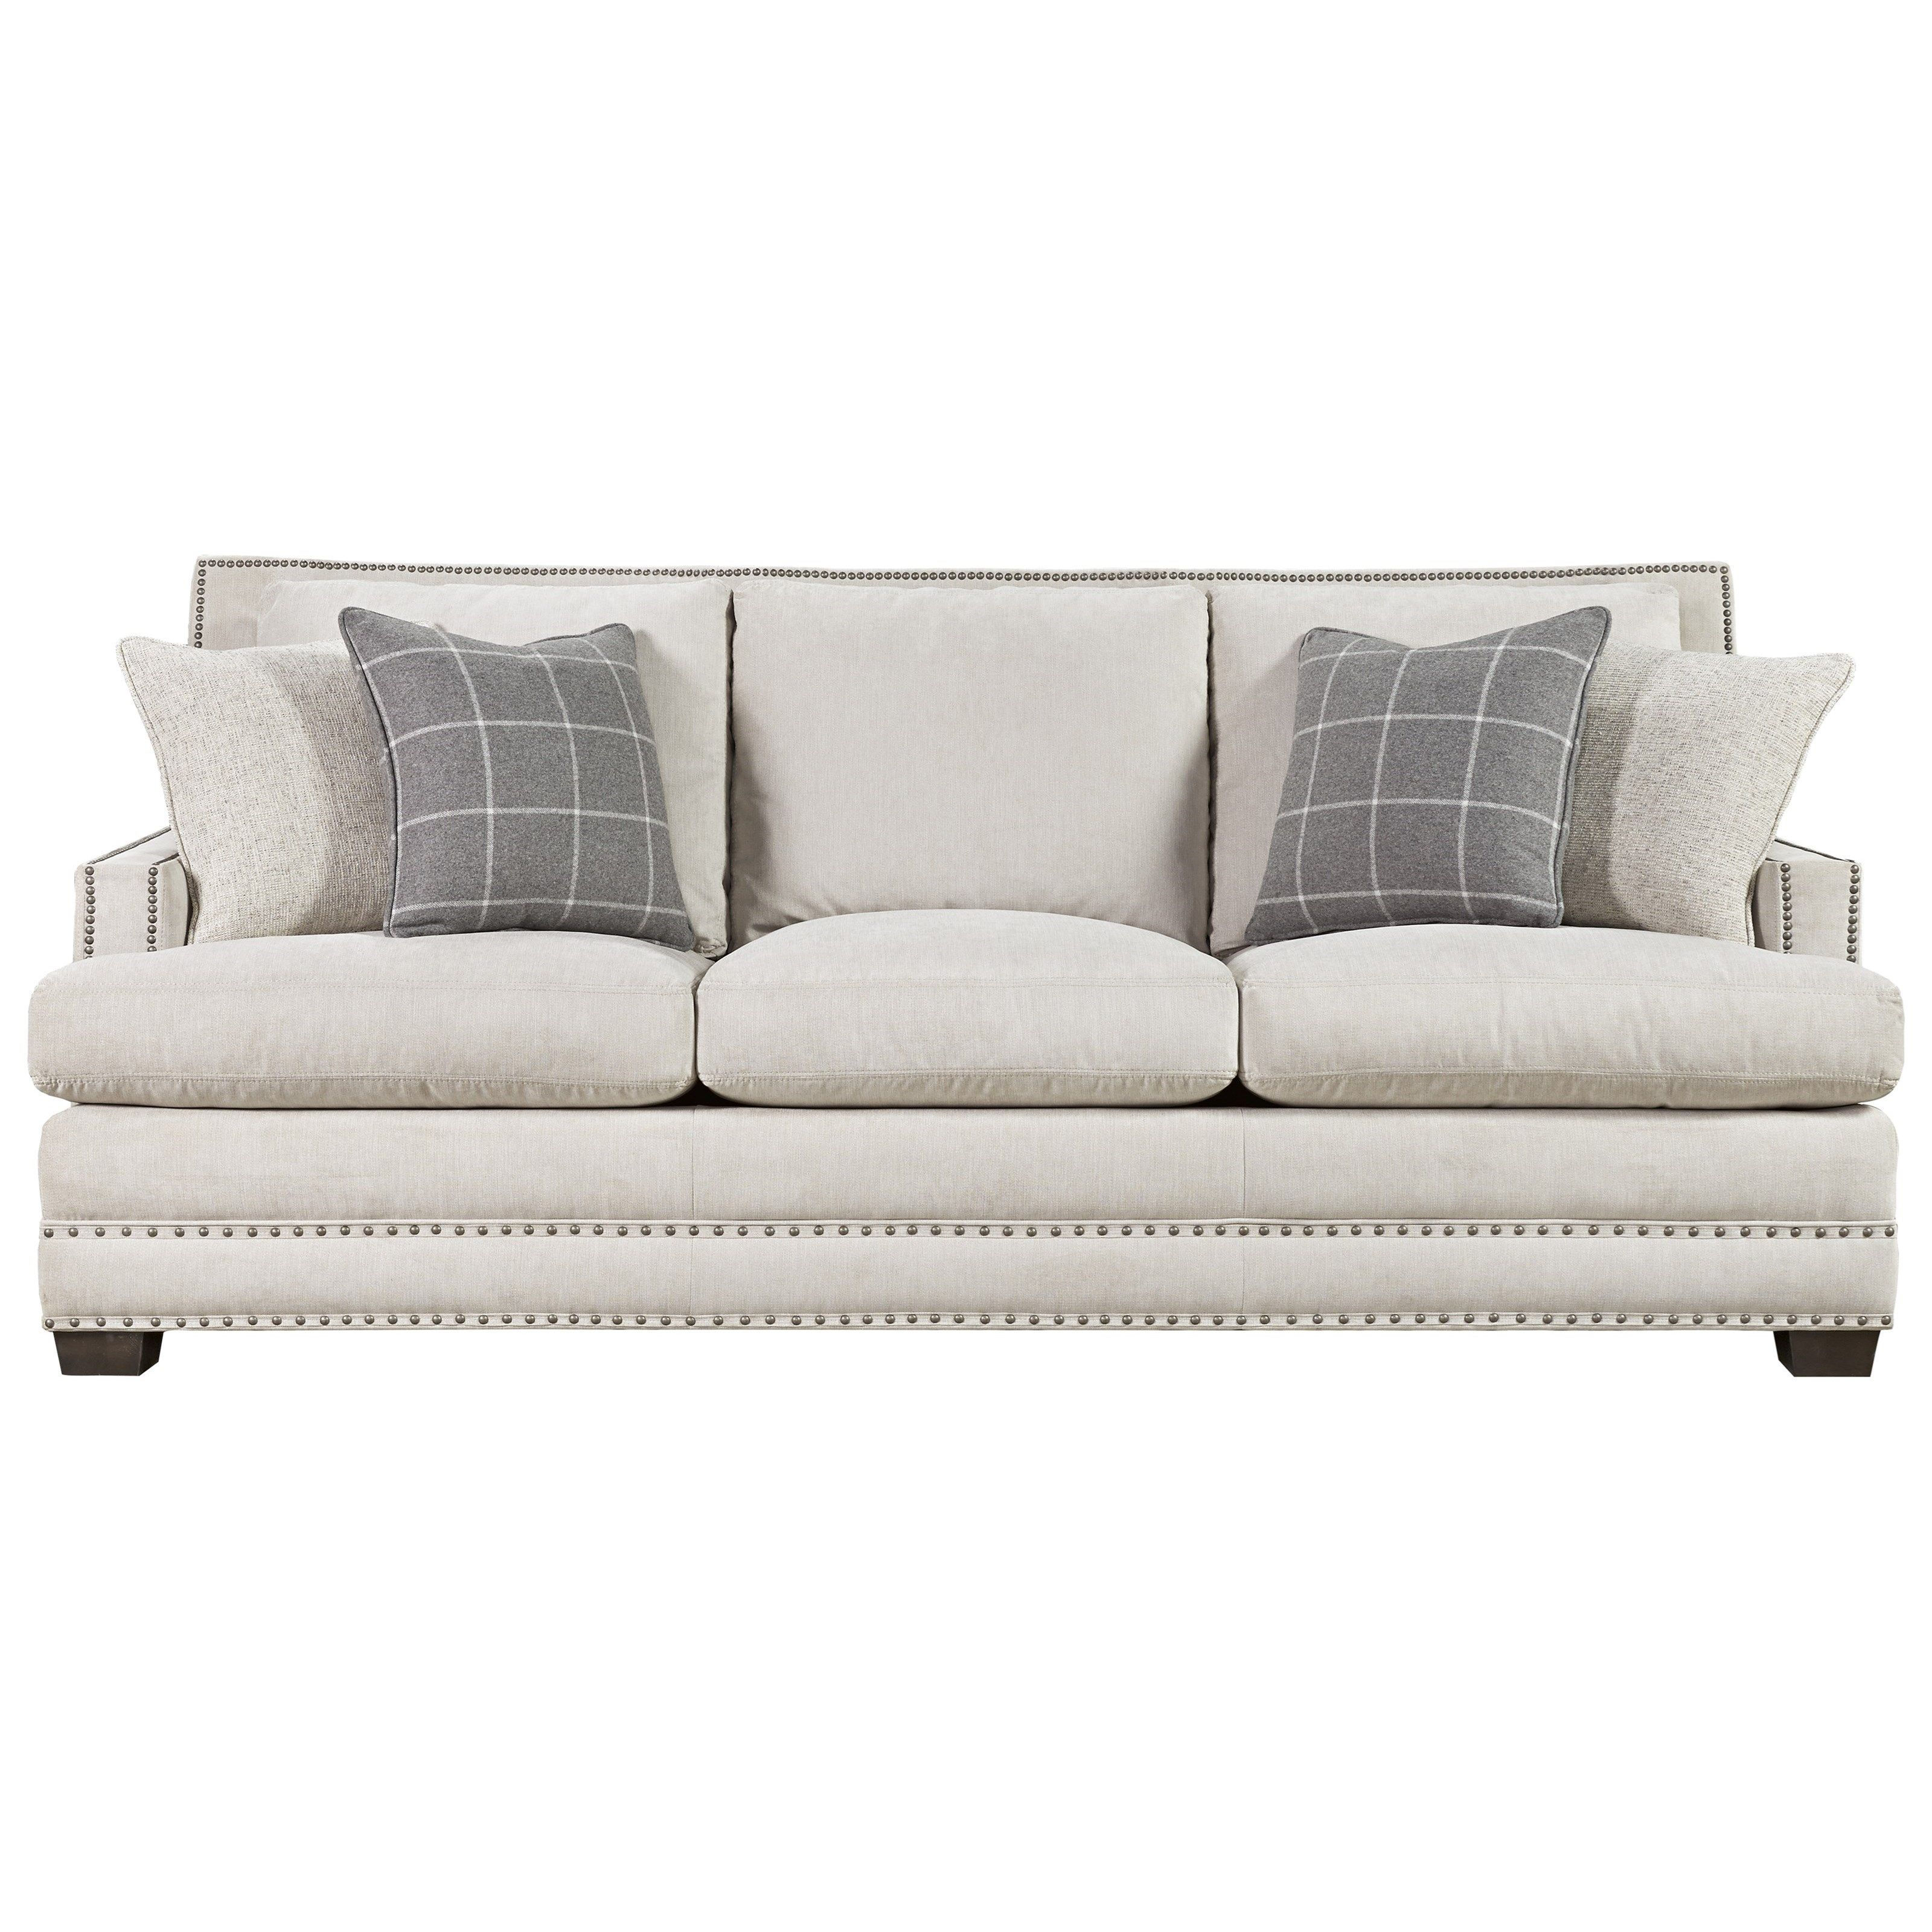 Franklin Street Sofa In Performance Fabric By Universal In